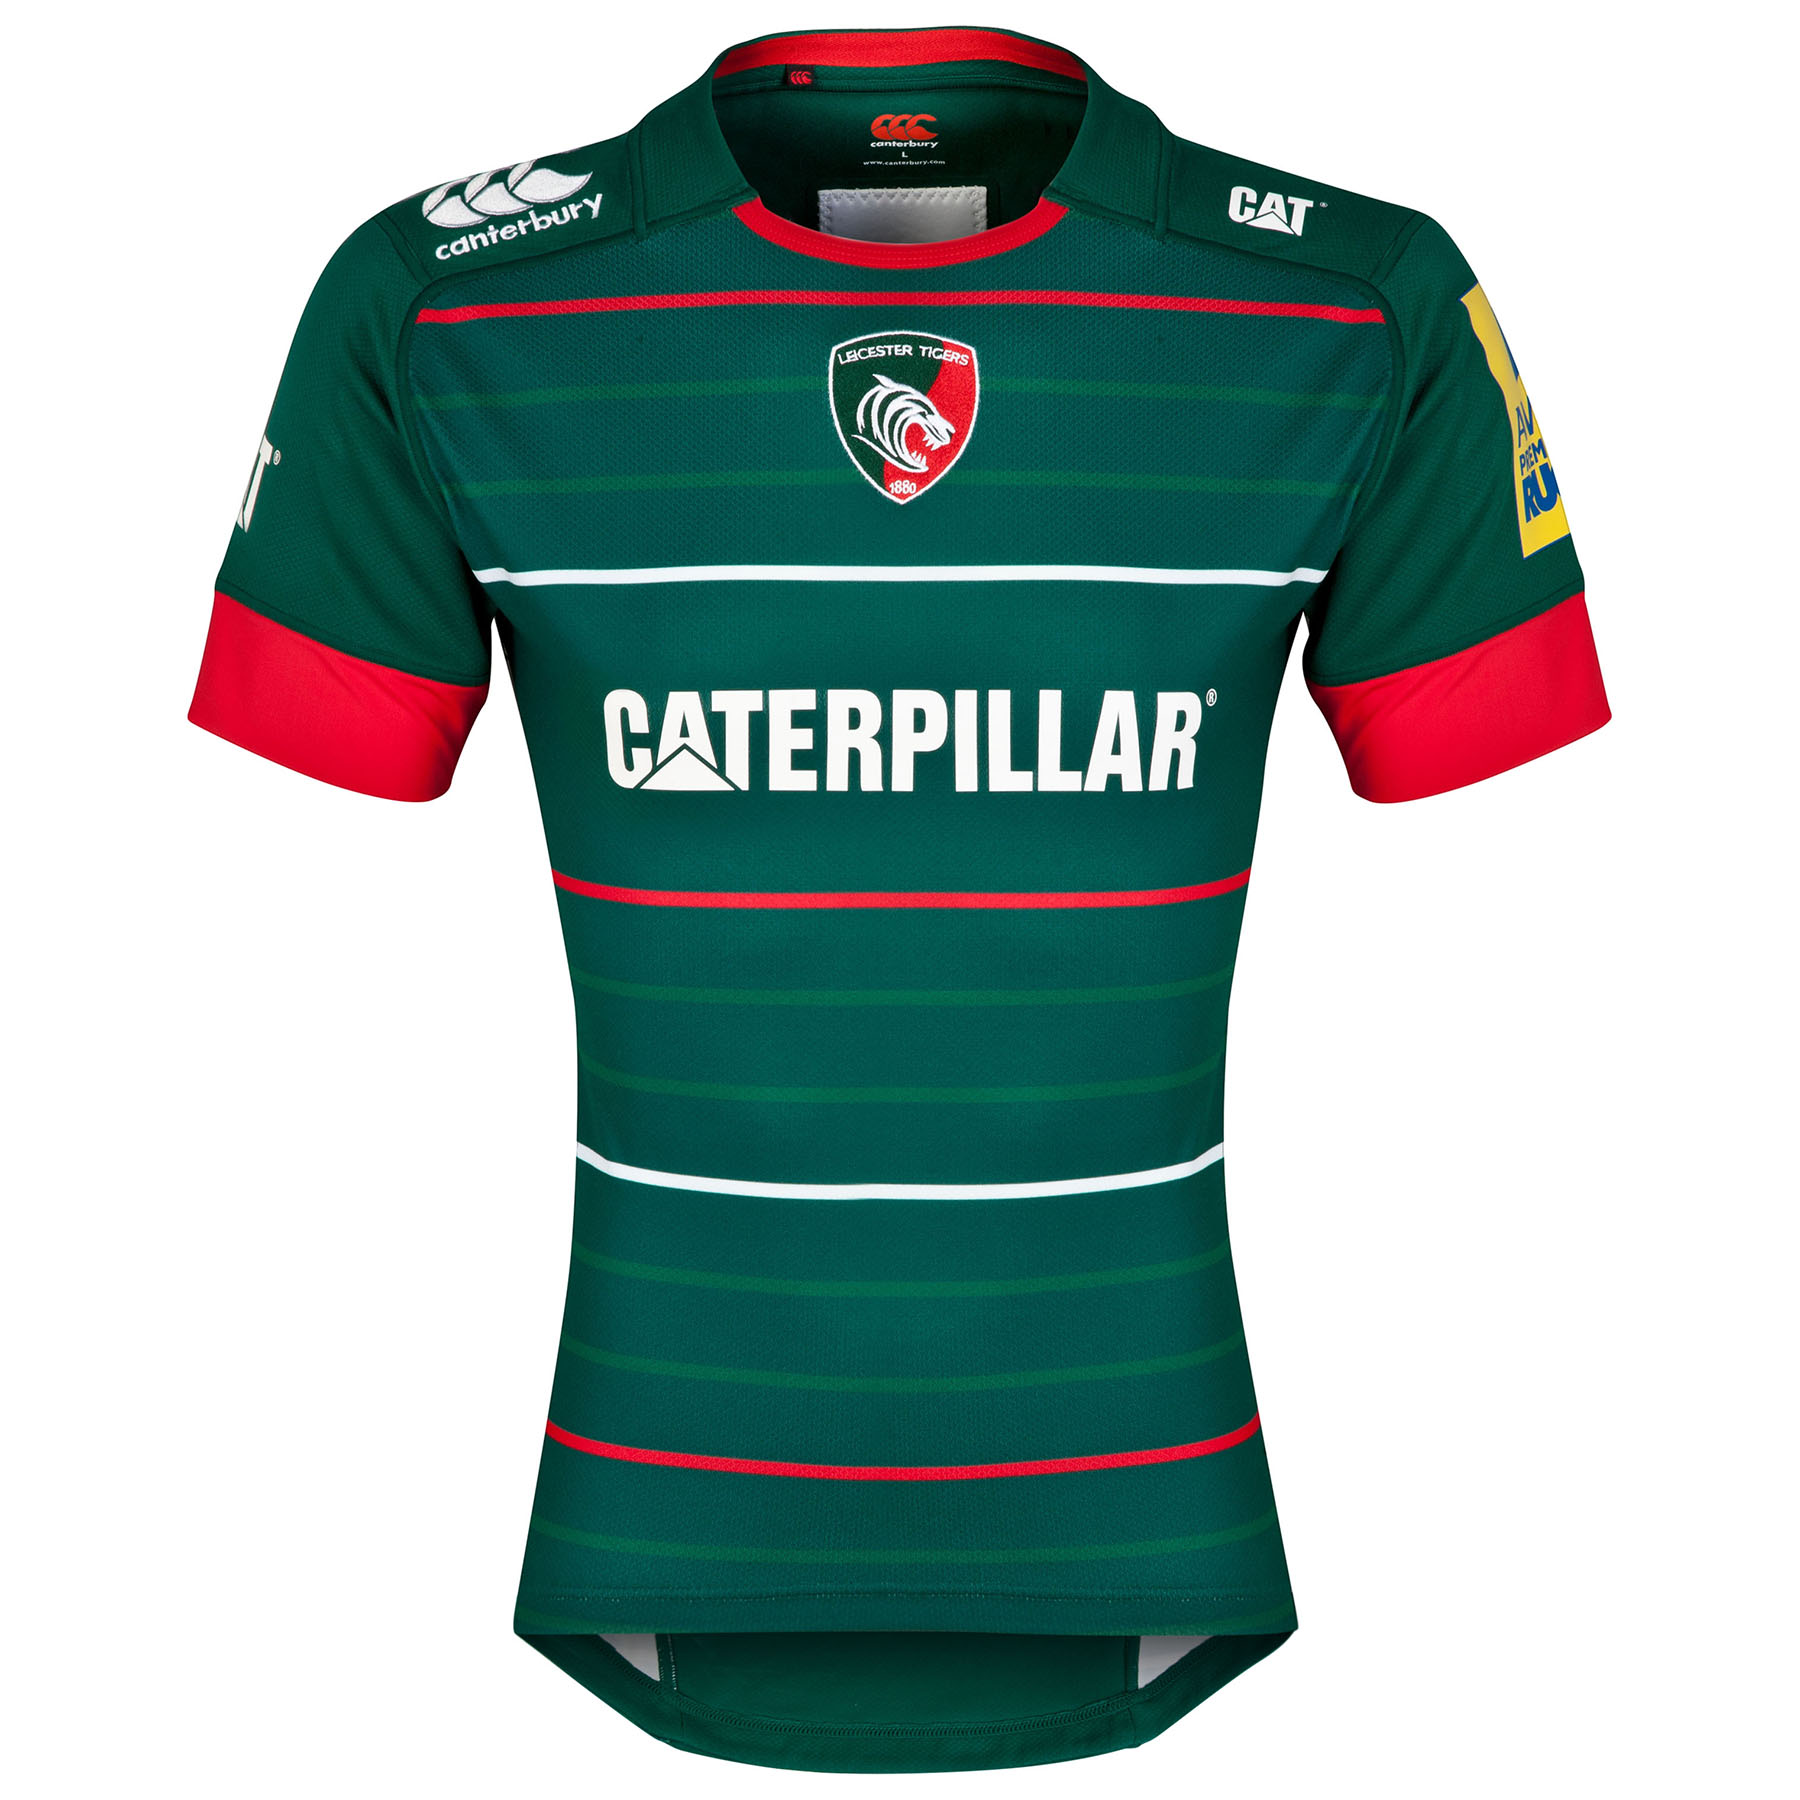 Leicester Tigers Home Test Jersey 2014/15